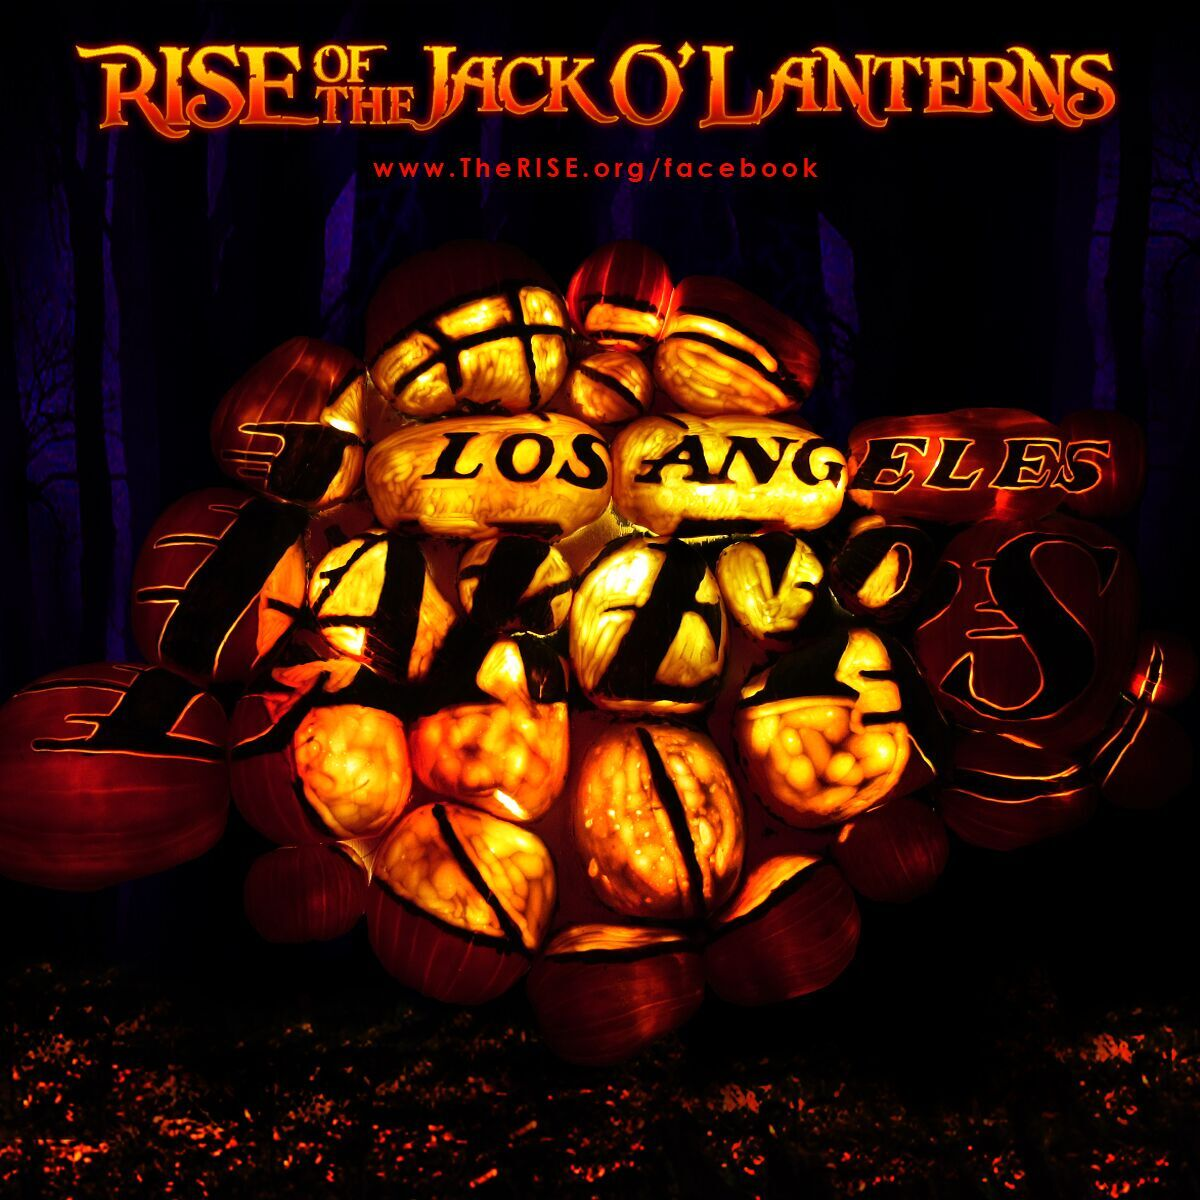 Rise of the jack o lanterns, halloween events, halloween events los angeles